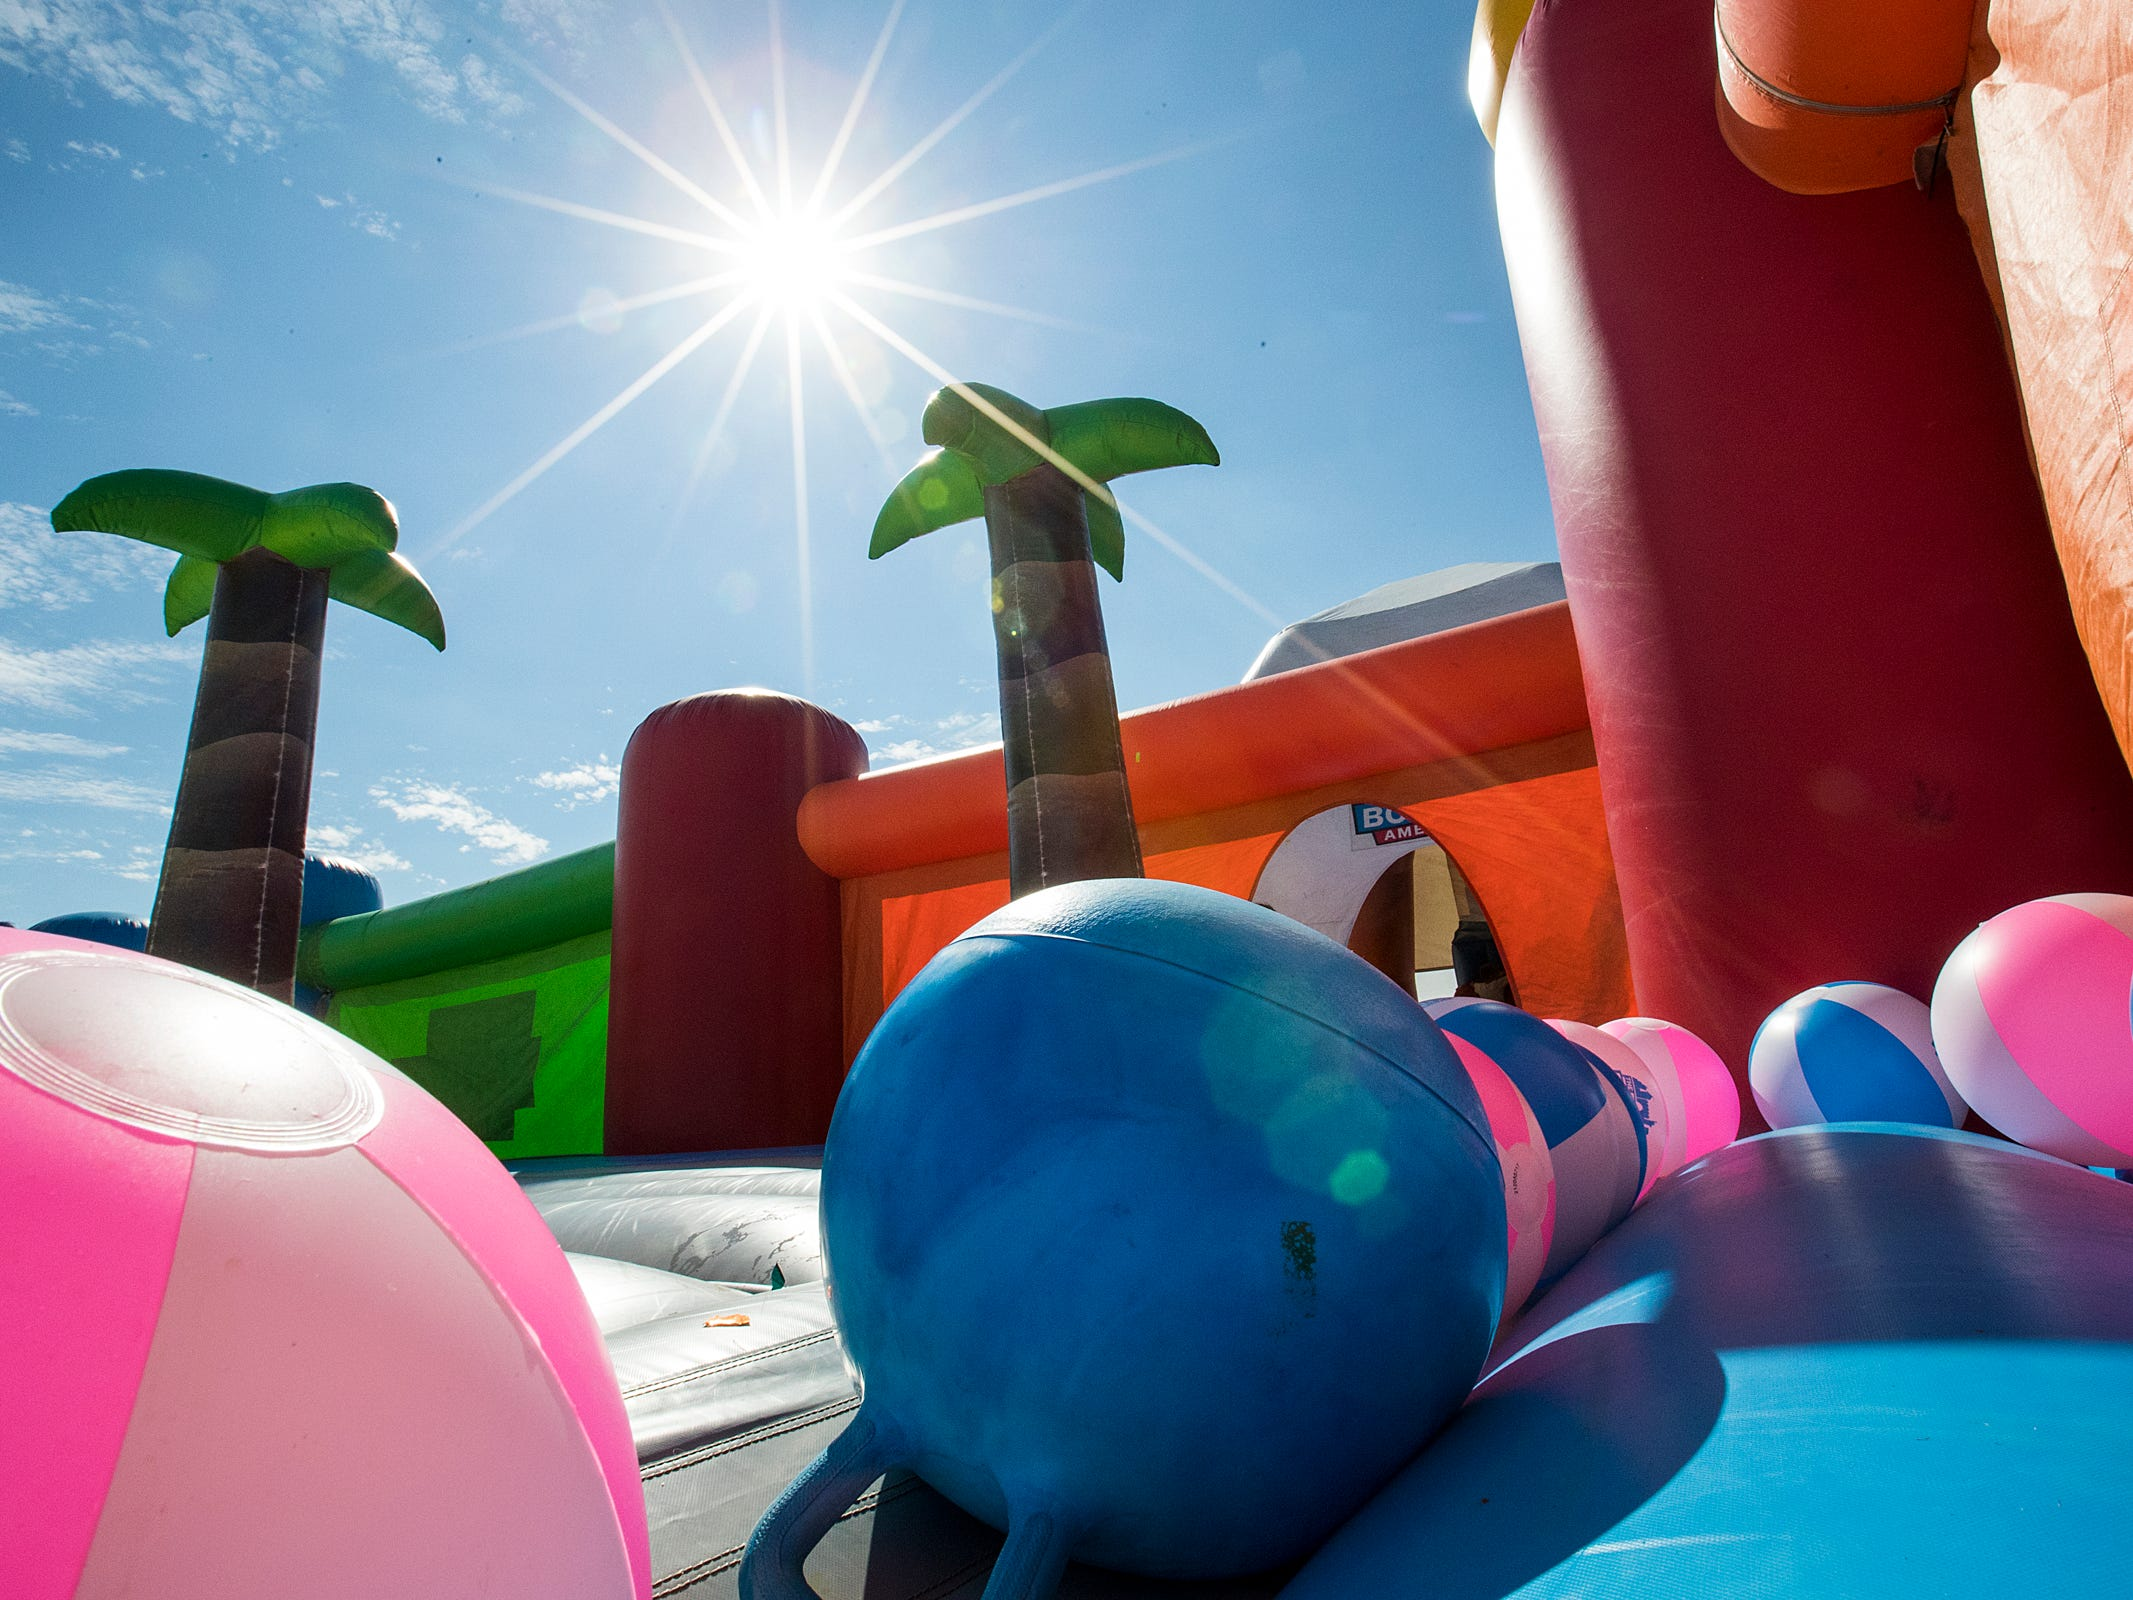 The Big Bounce America inflatable attraction at Waterman's Family Farm in Indianapolis is seen Friday, Sept. 14, 2018. The world's largest bounce house covers 10,000 square feet and will be in Indy though September 16.